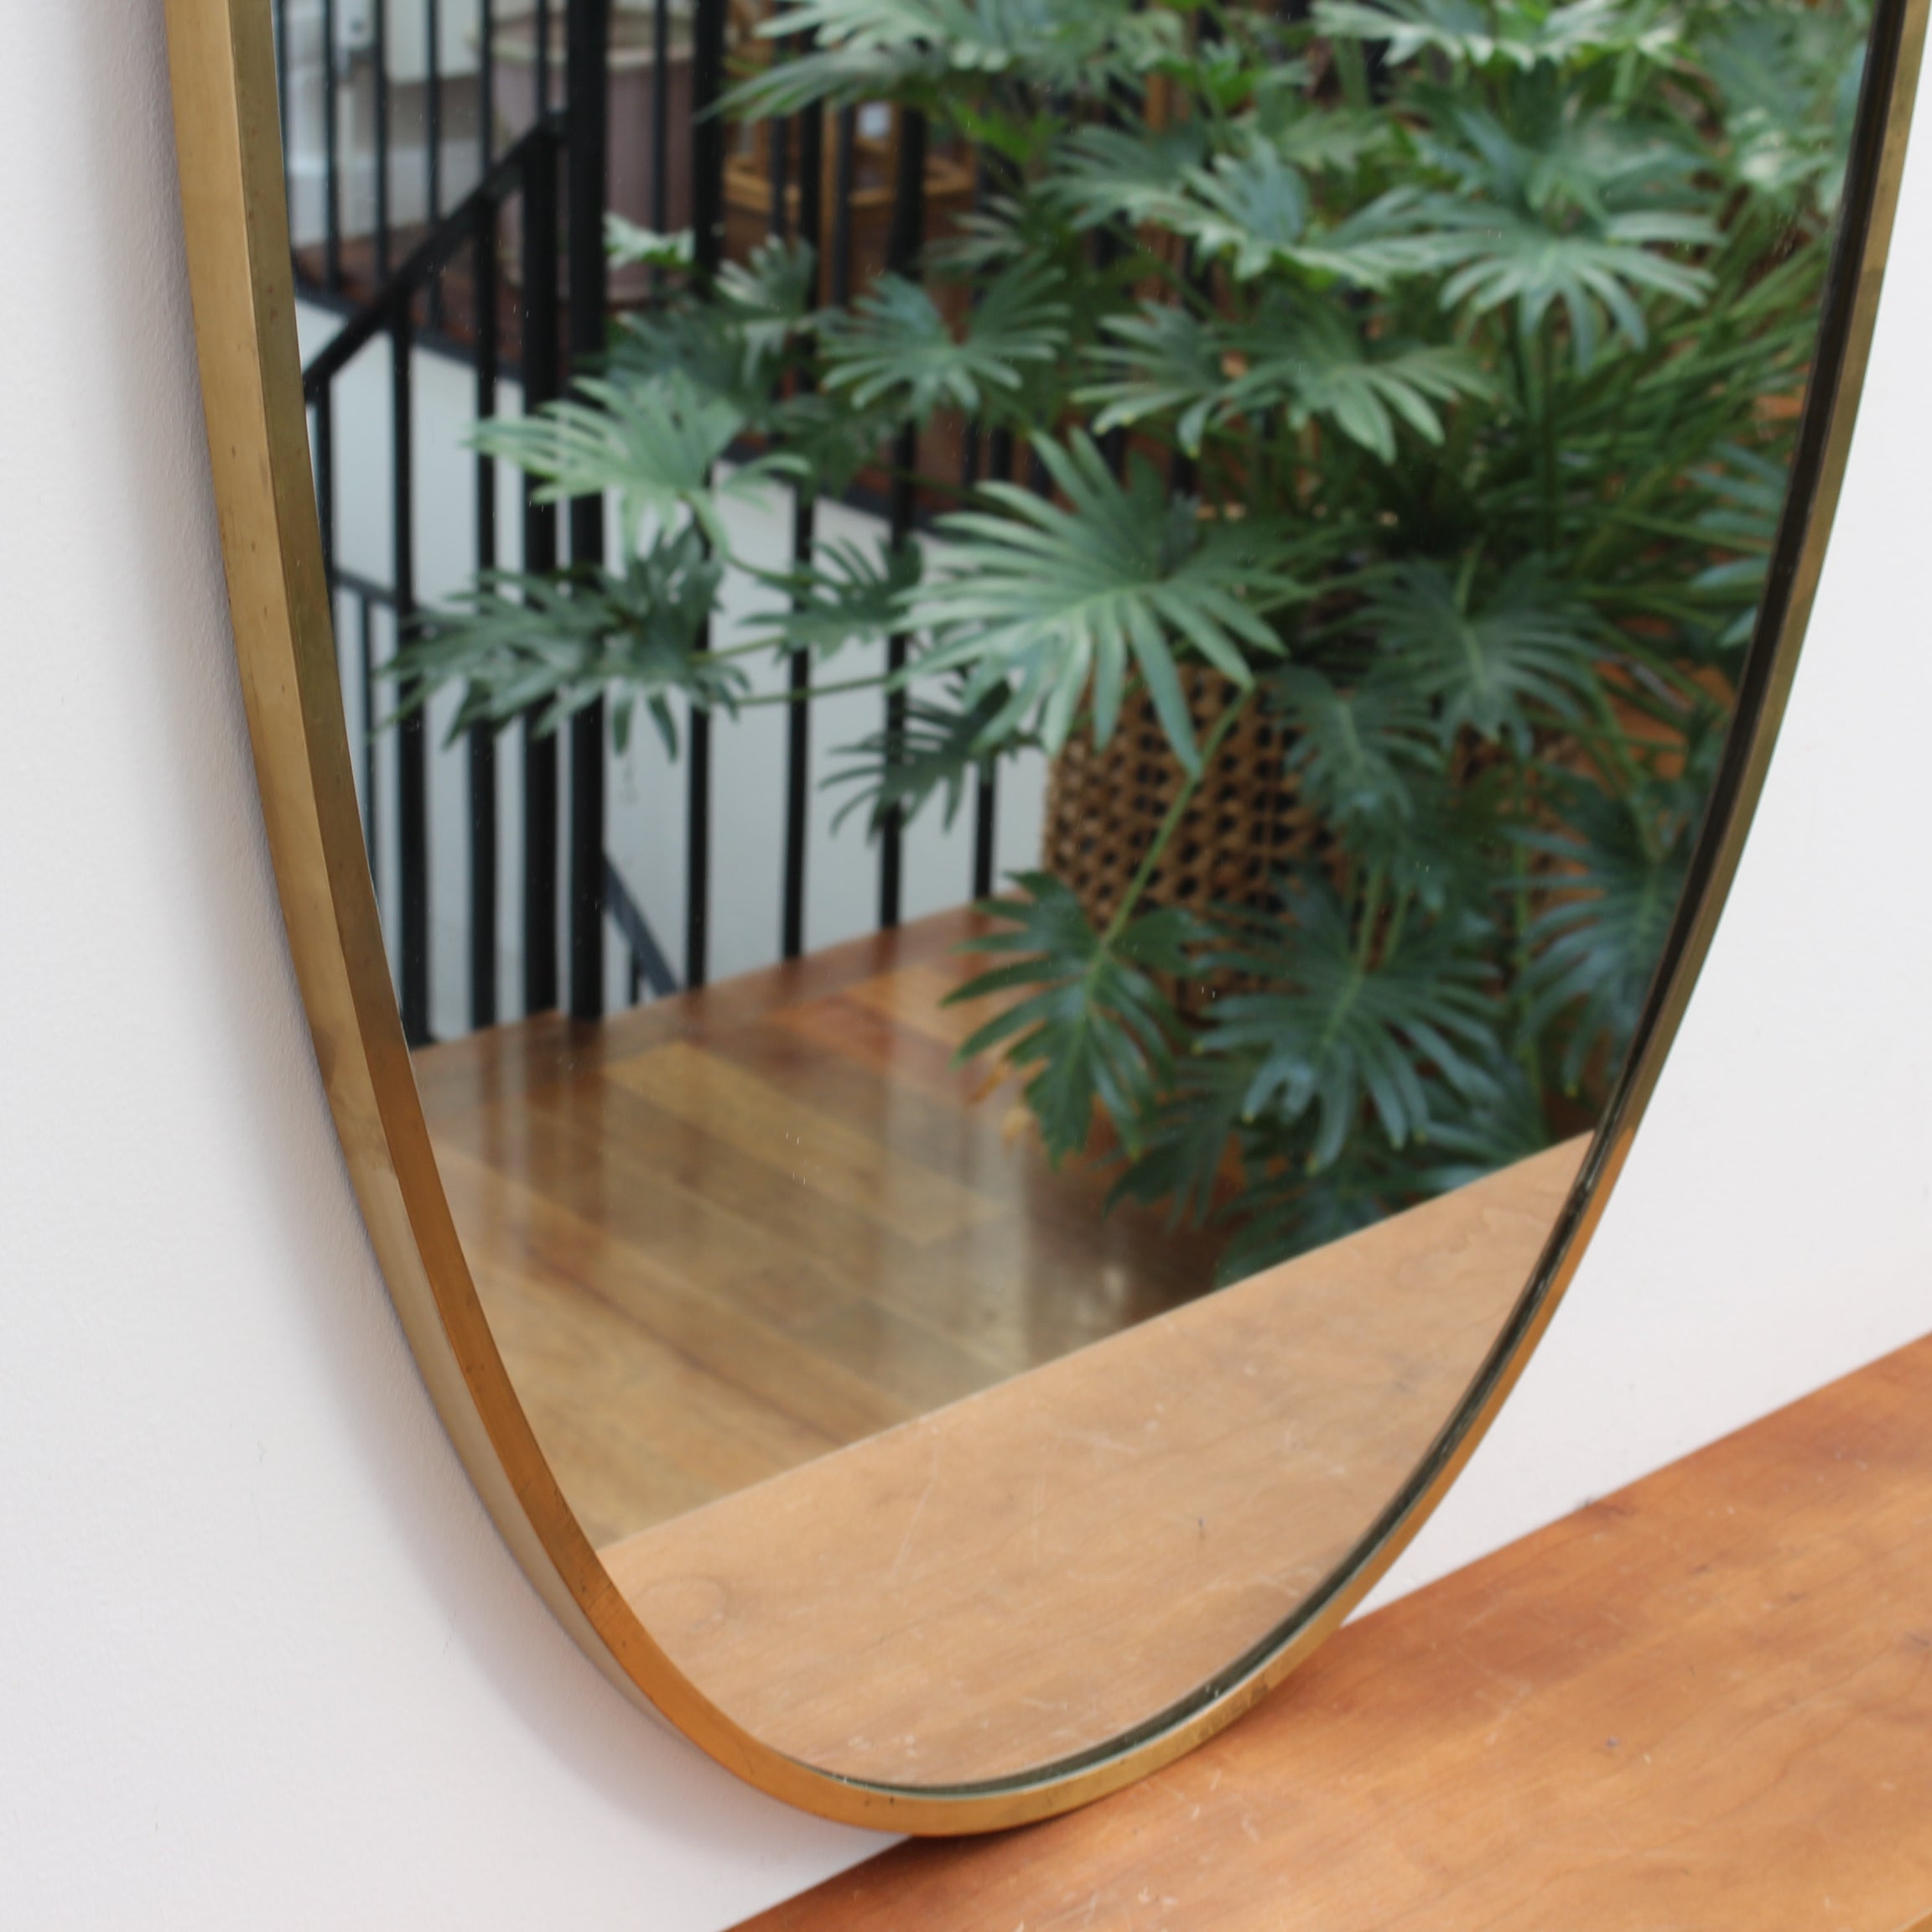 Mid-Century Italian Crest-Shaped Wall Mirror with Brass Frame (circa 1950s)